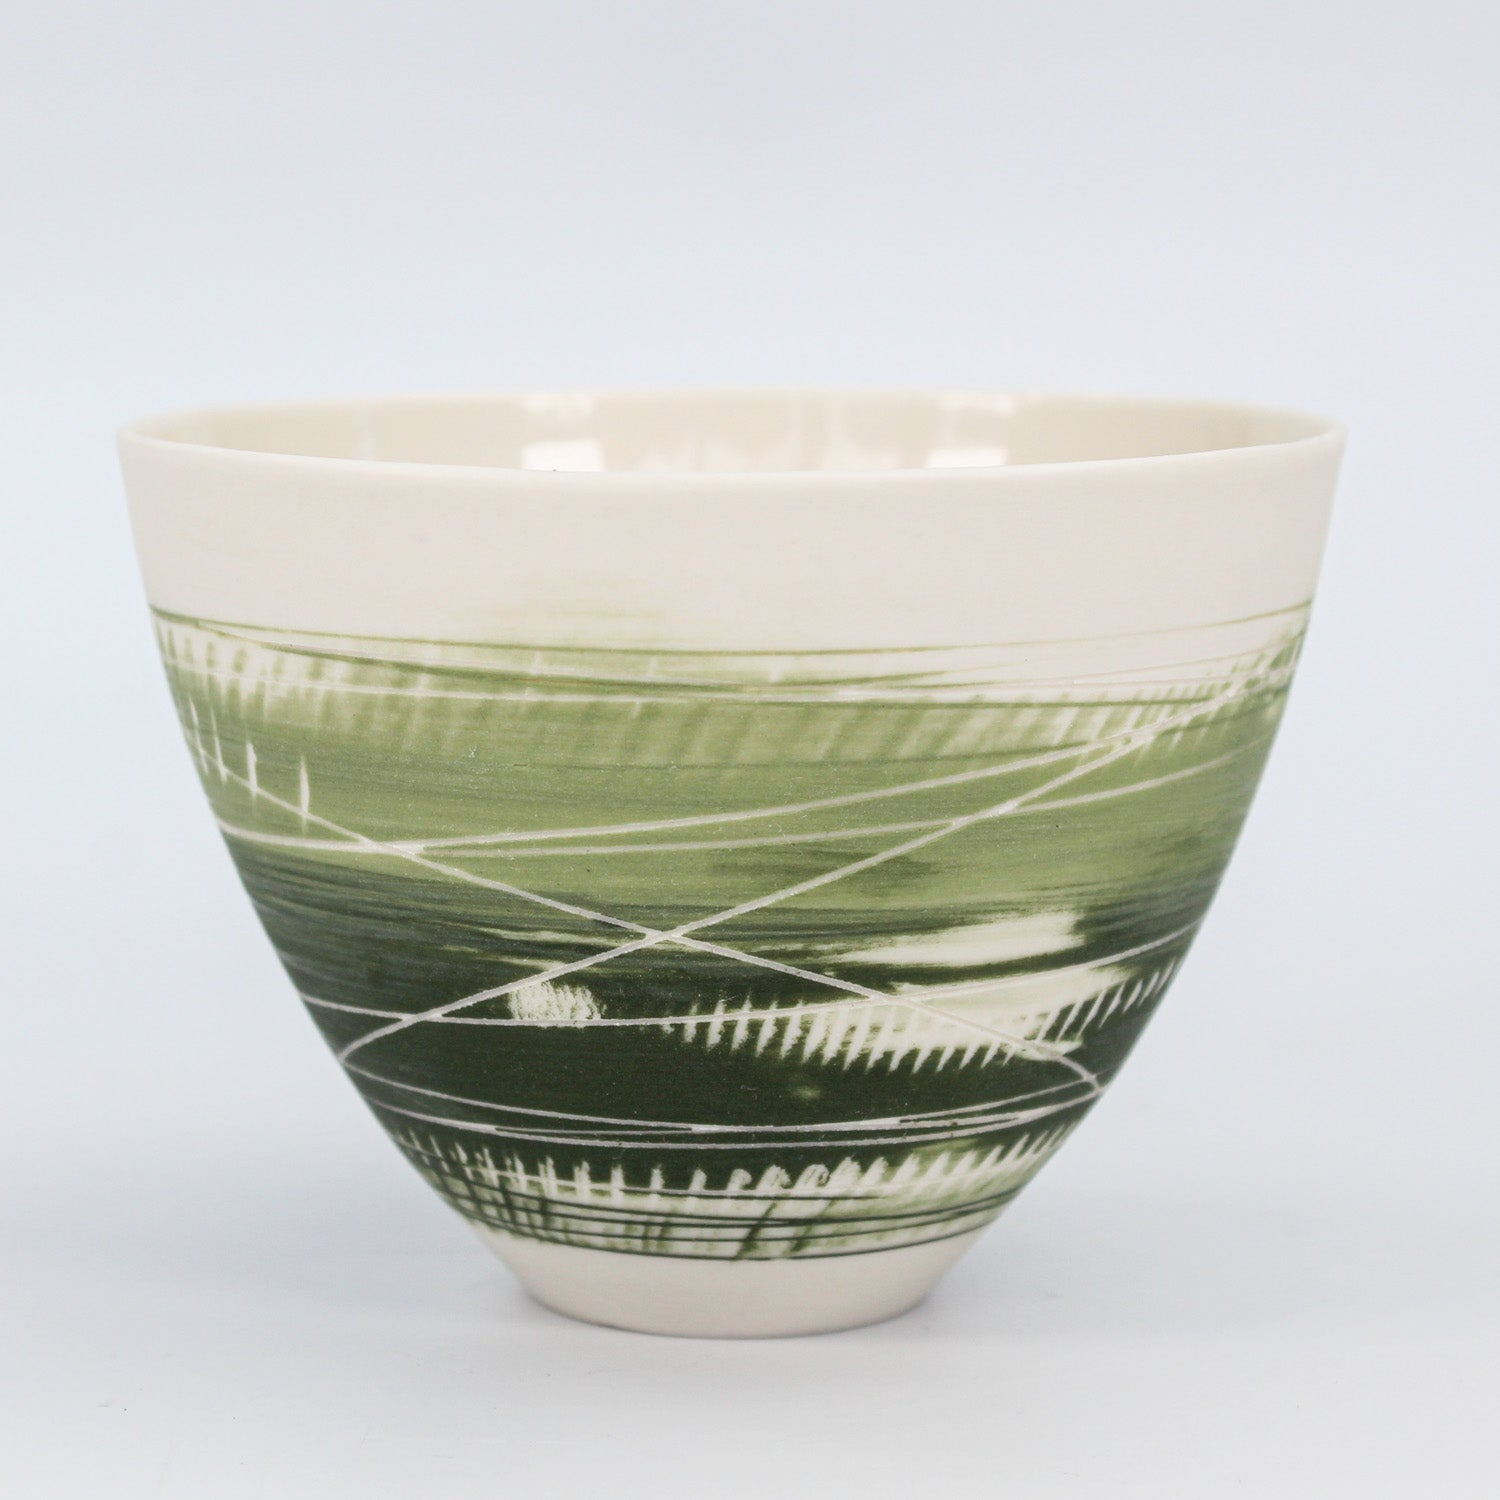 Small porcelain cup/bowl